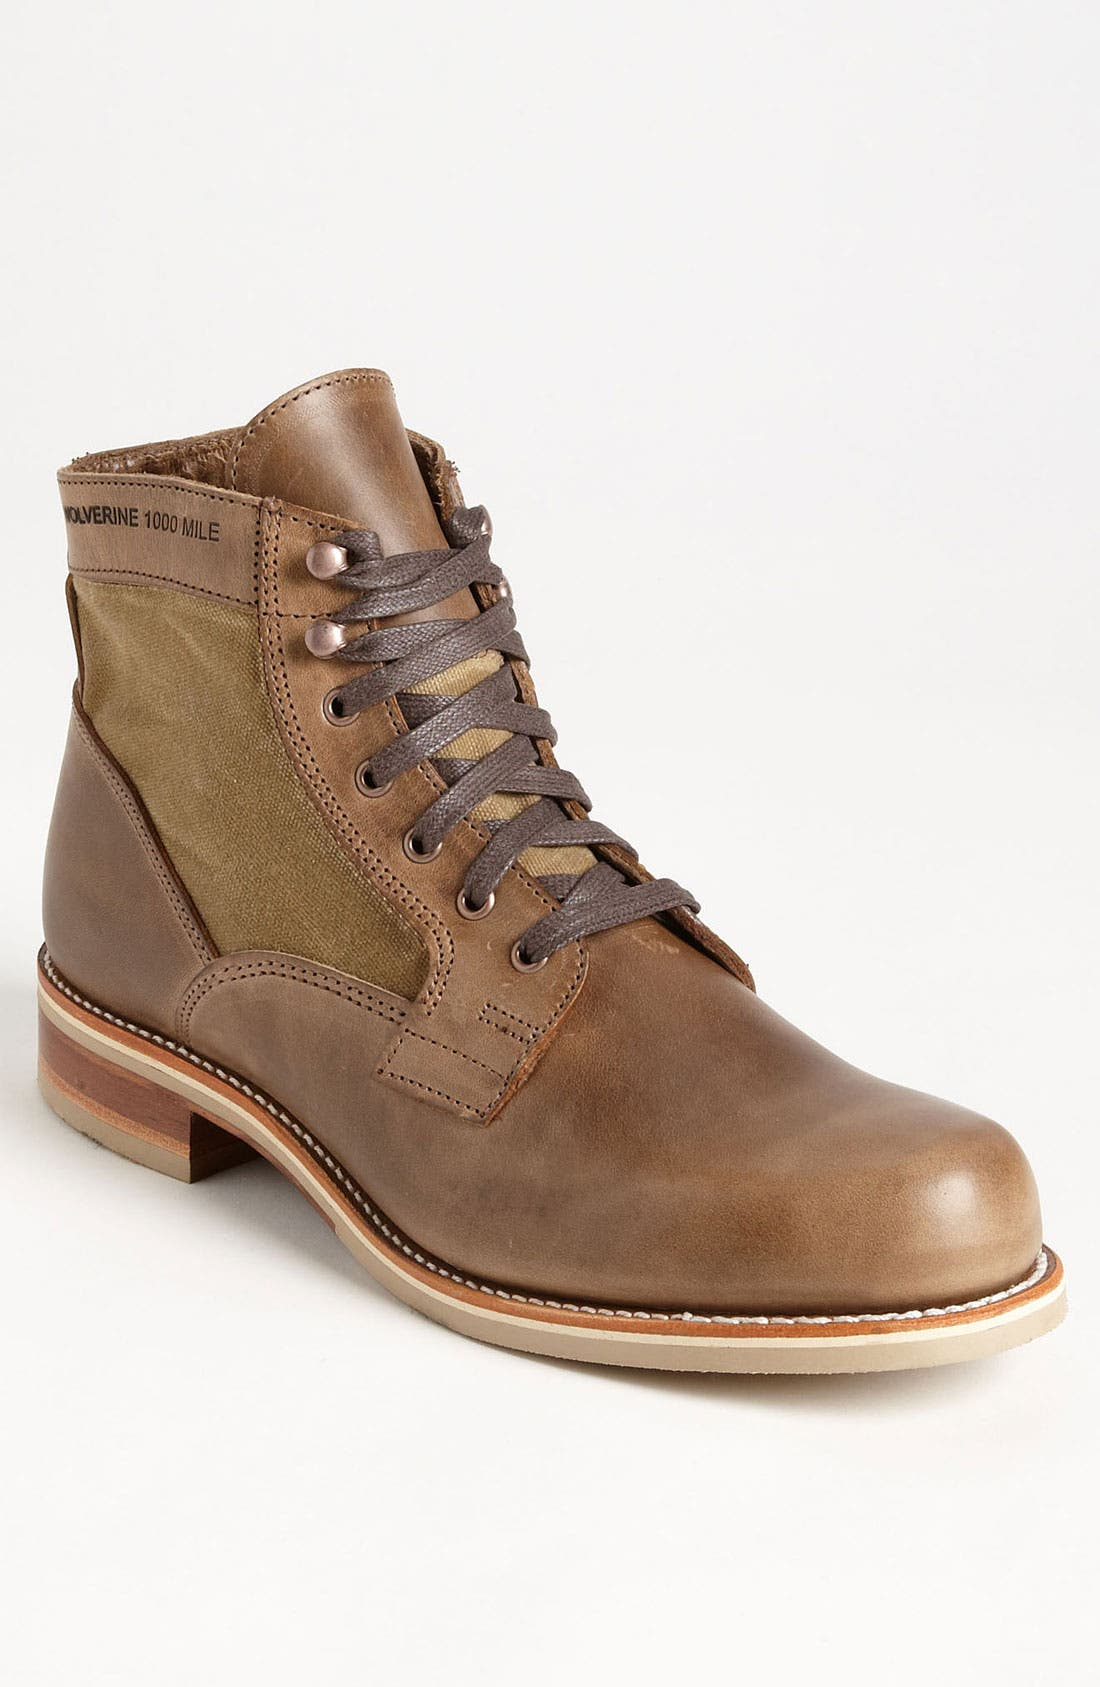 Alternate Image 1 Selected - Wolverine '1000 Mile - Whitepine' Boot